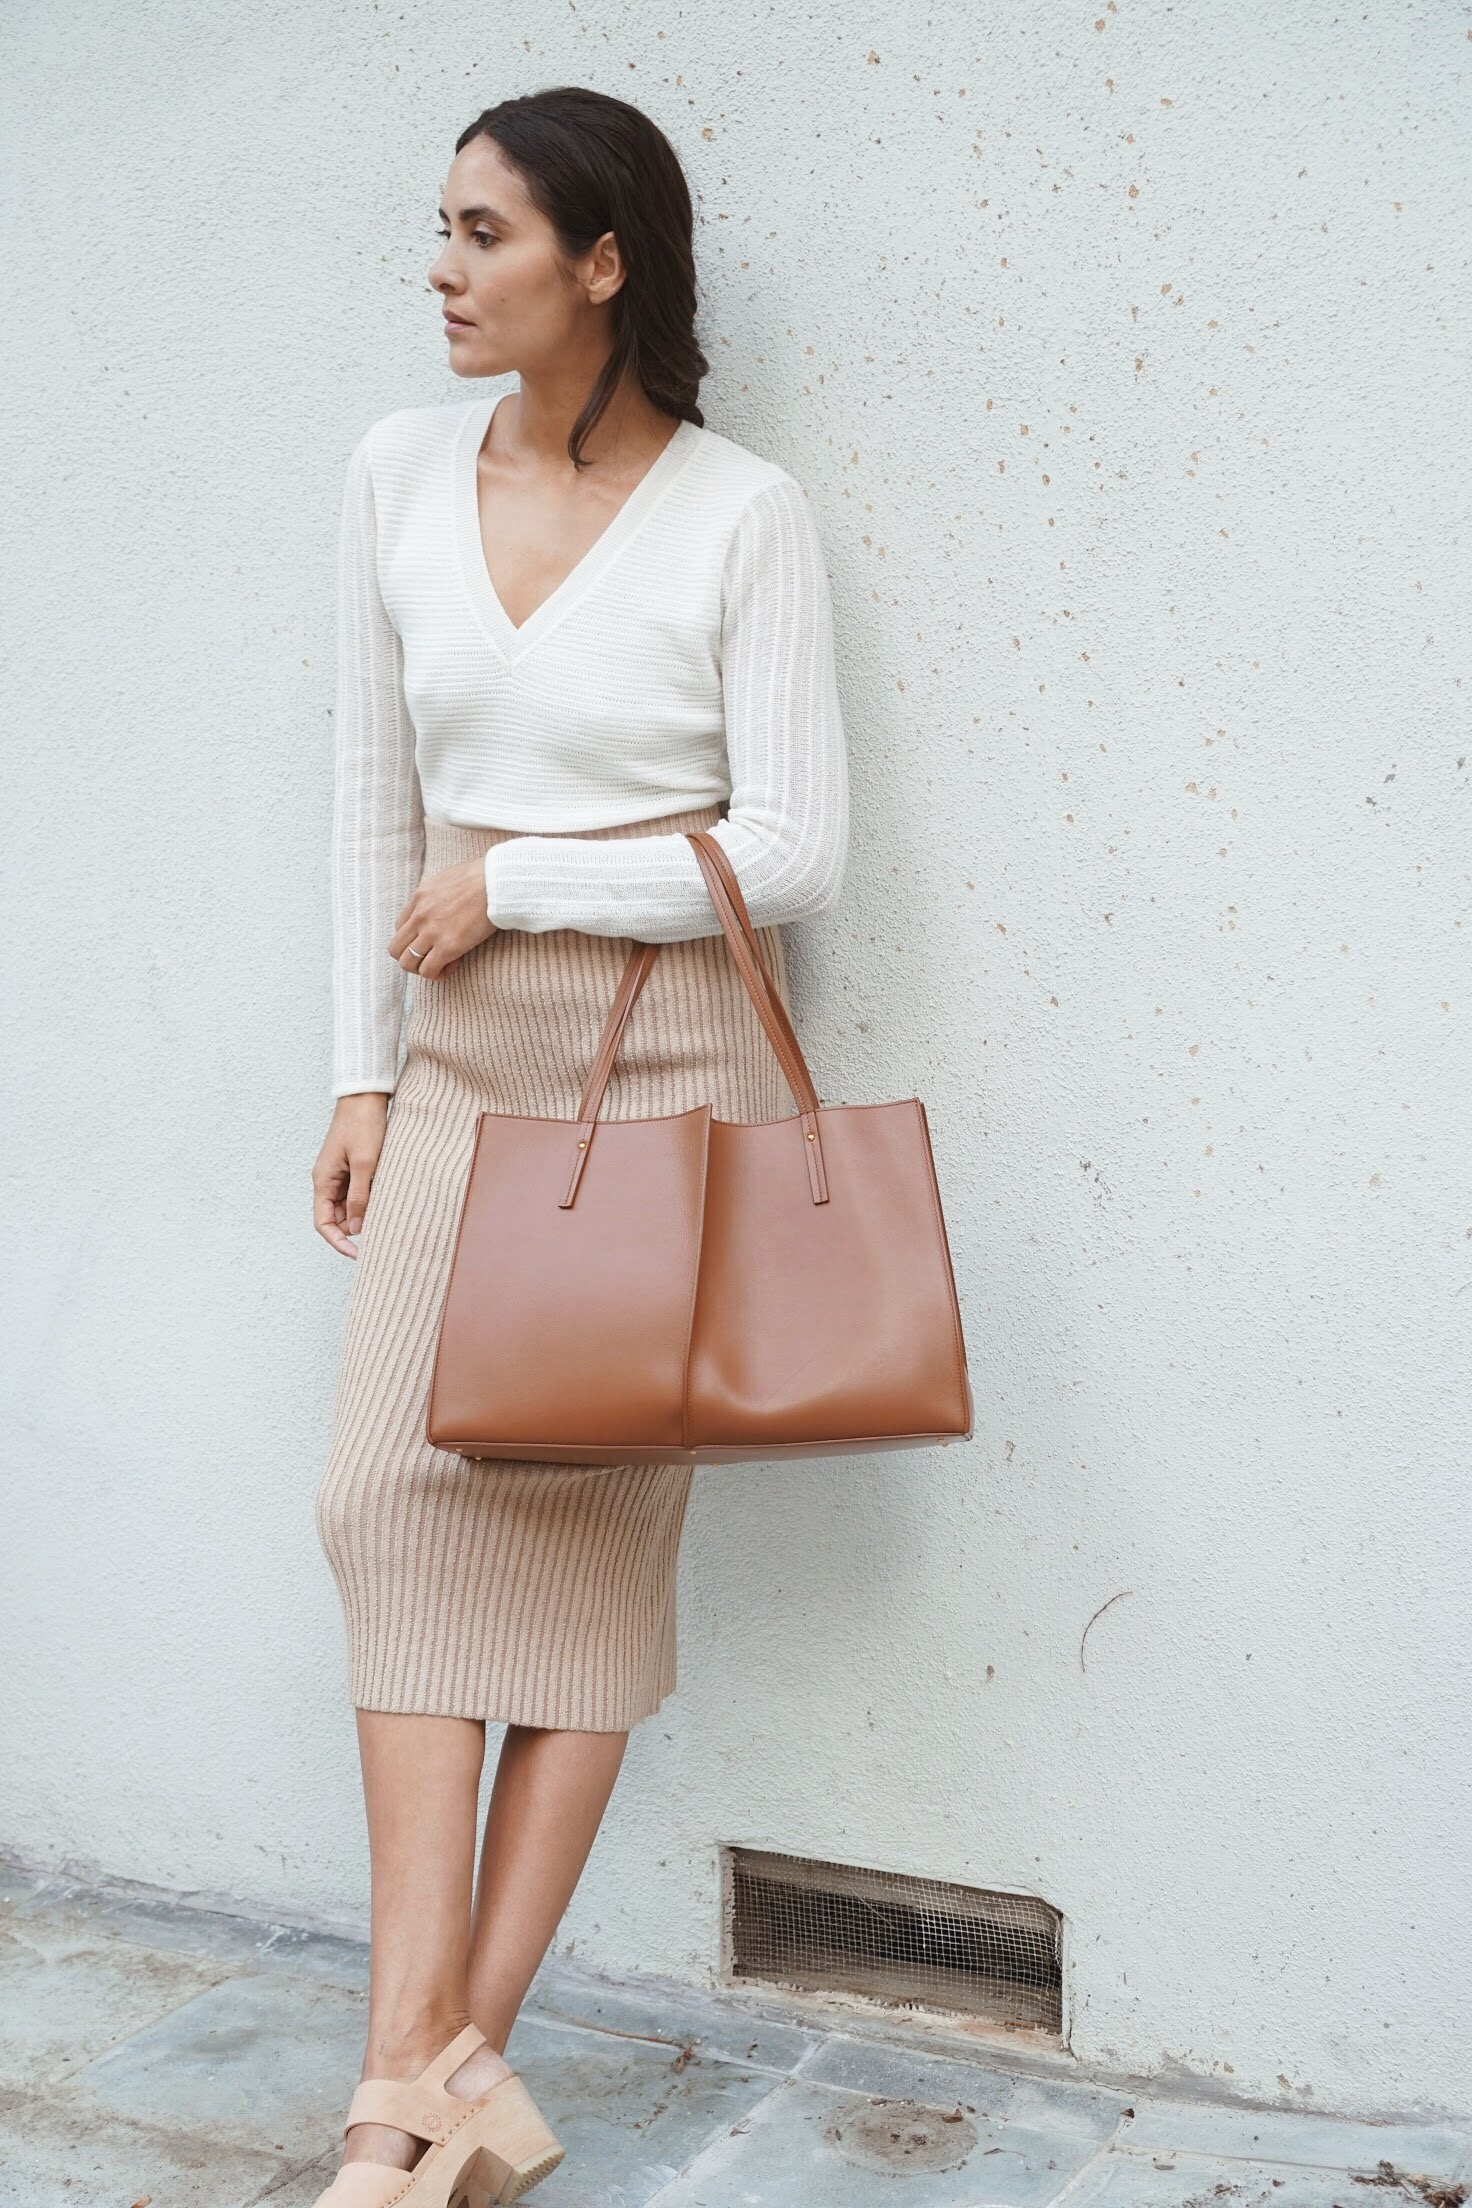 Maiyet  Knit Stripe V Neck in Ivory +  Eleven Six  Rib Tube Skirt in Nude +  Maiyet  Sia East/West in Cognac +   Zuzii   Closed Toe Clogs in Natural.